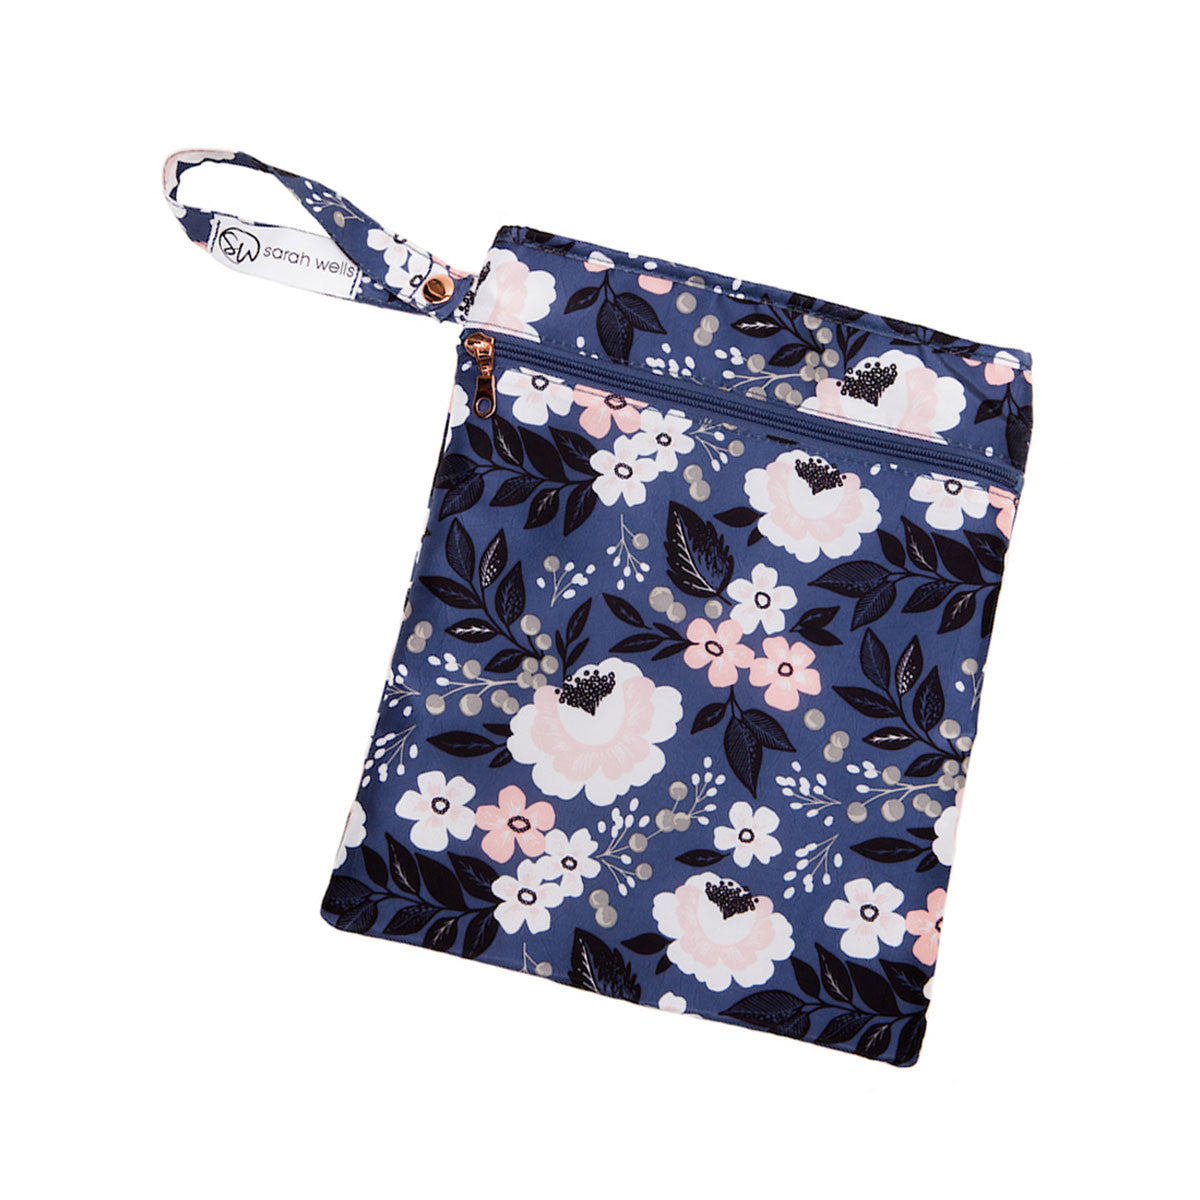 Pumparoo (Floral) - Breast Pump Bags and Pumping Accessories from Sarah Wells Bags